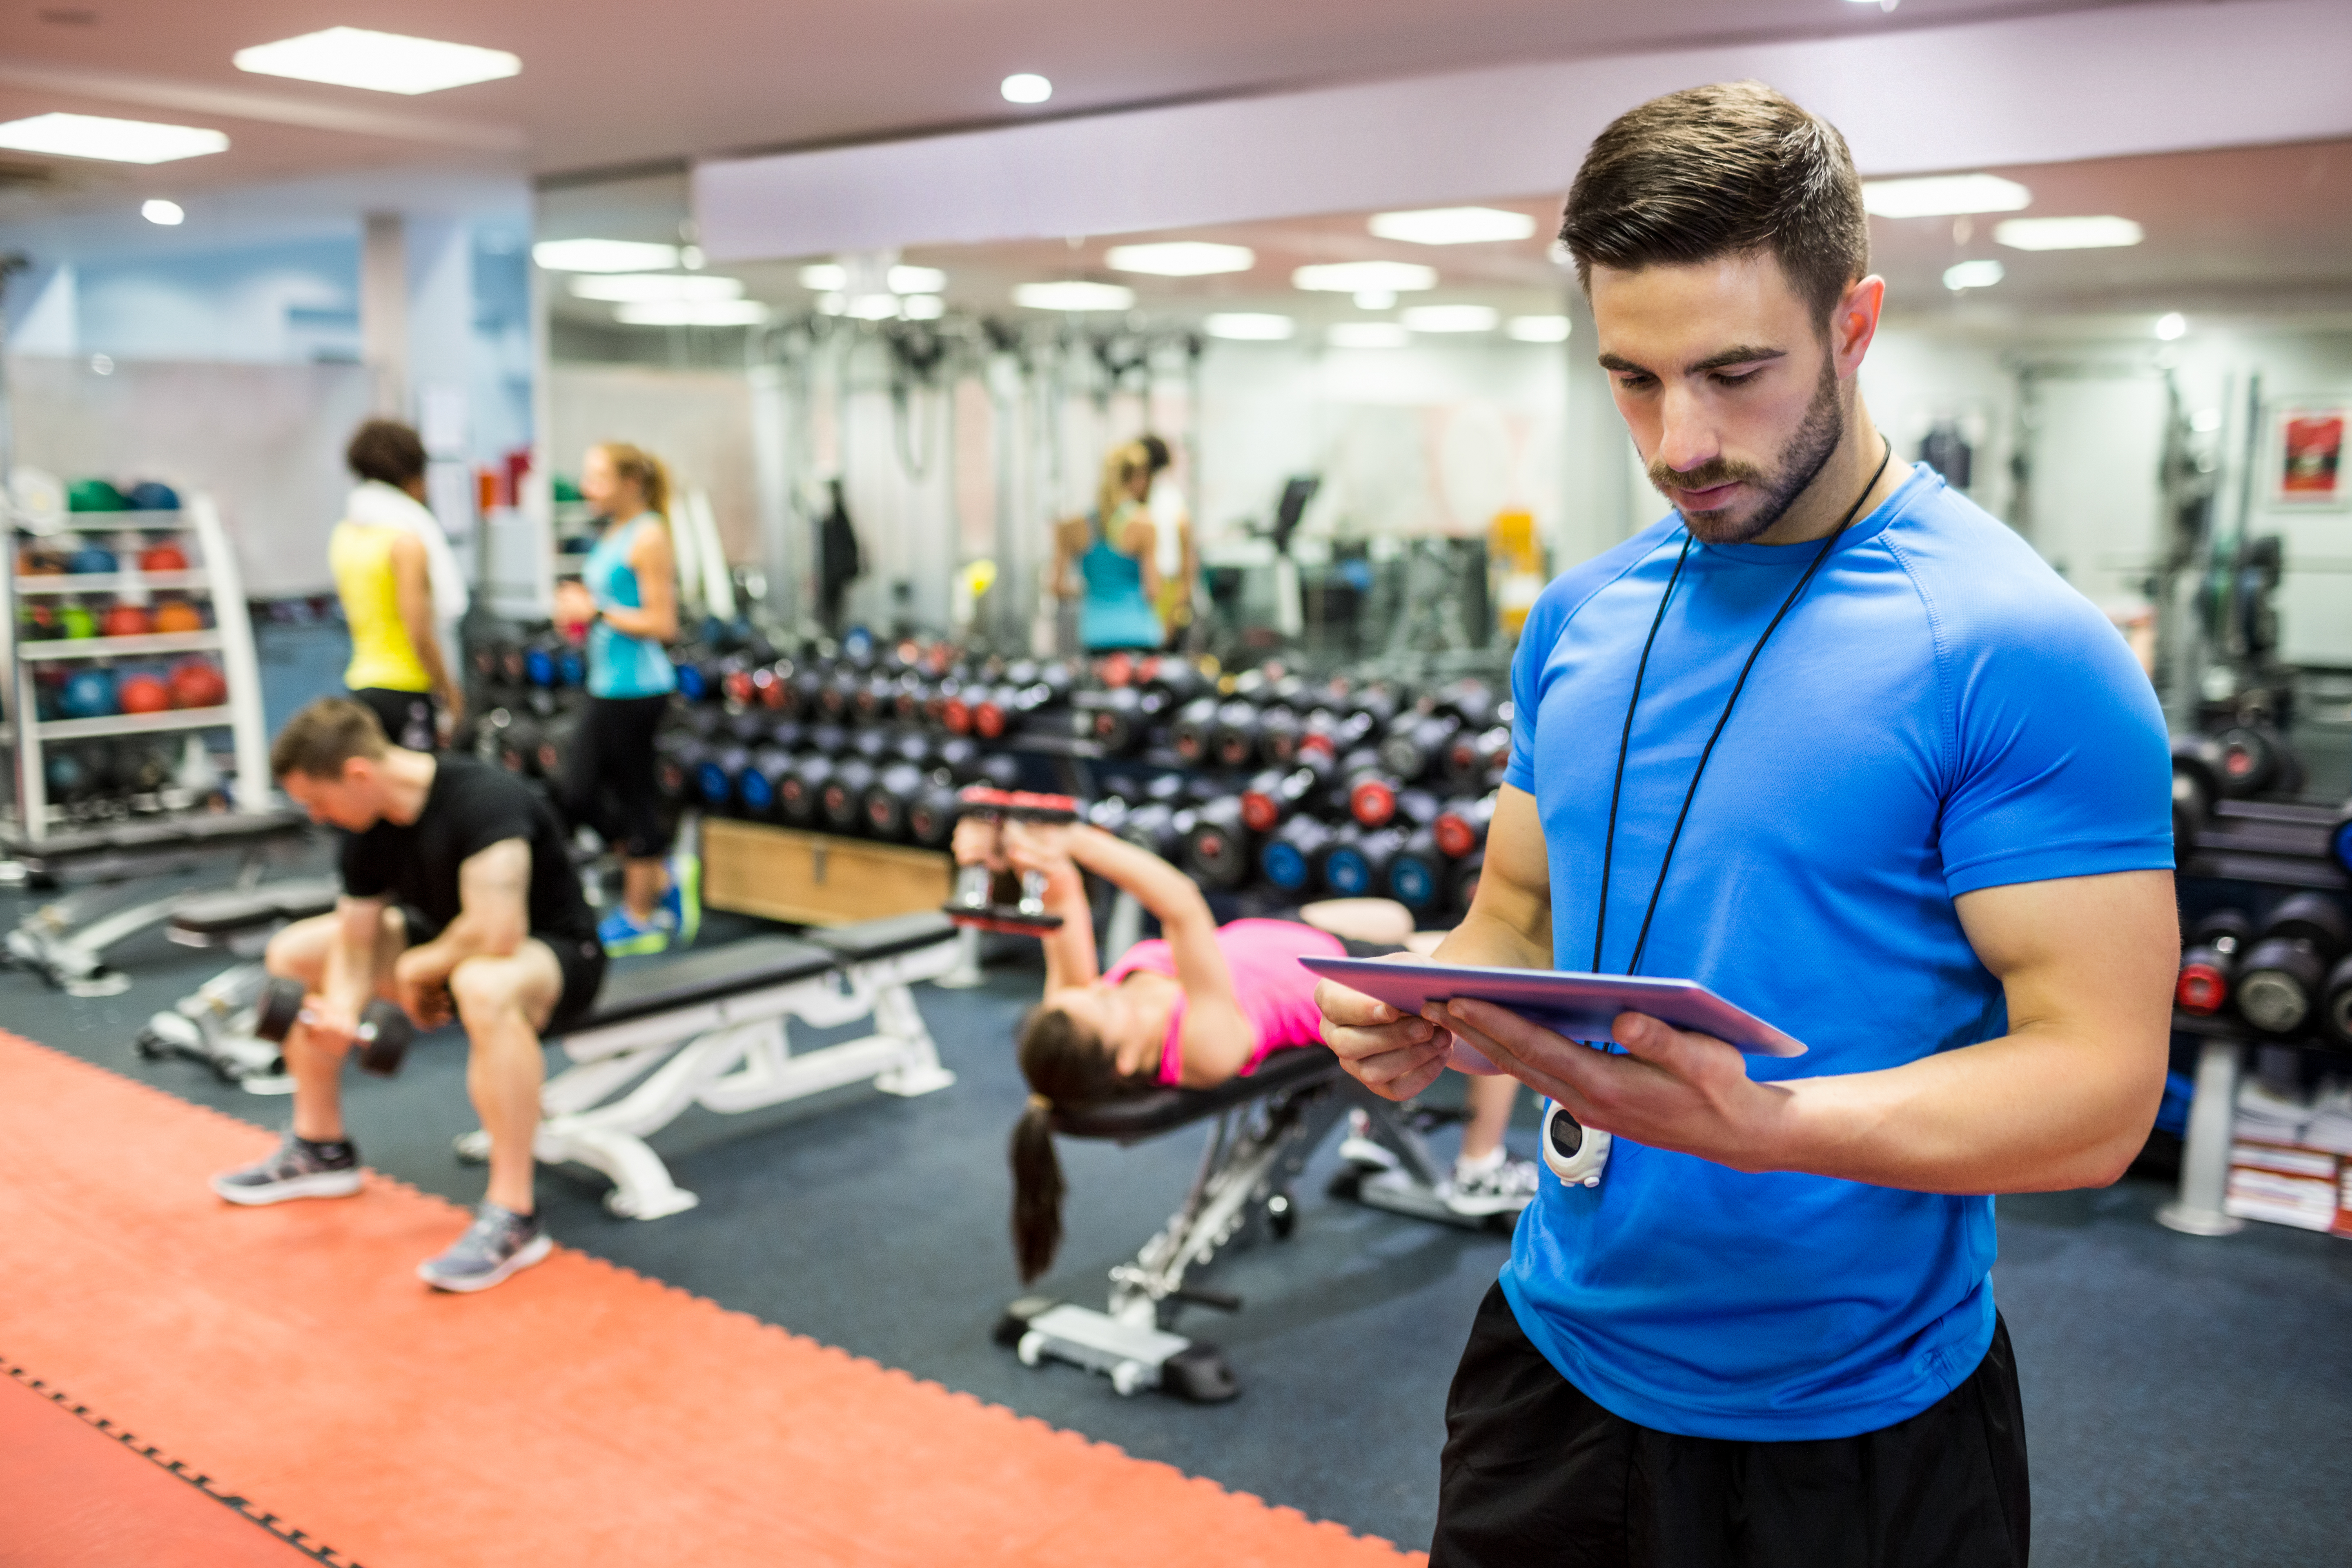 The Cheapest Personal Trainer Certification Livestrong